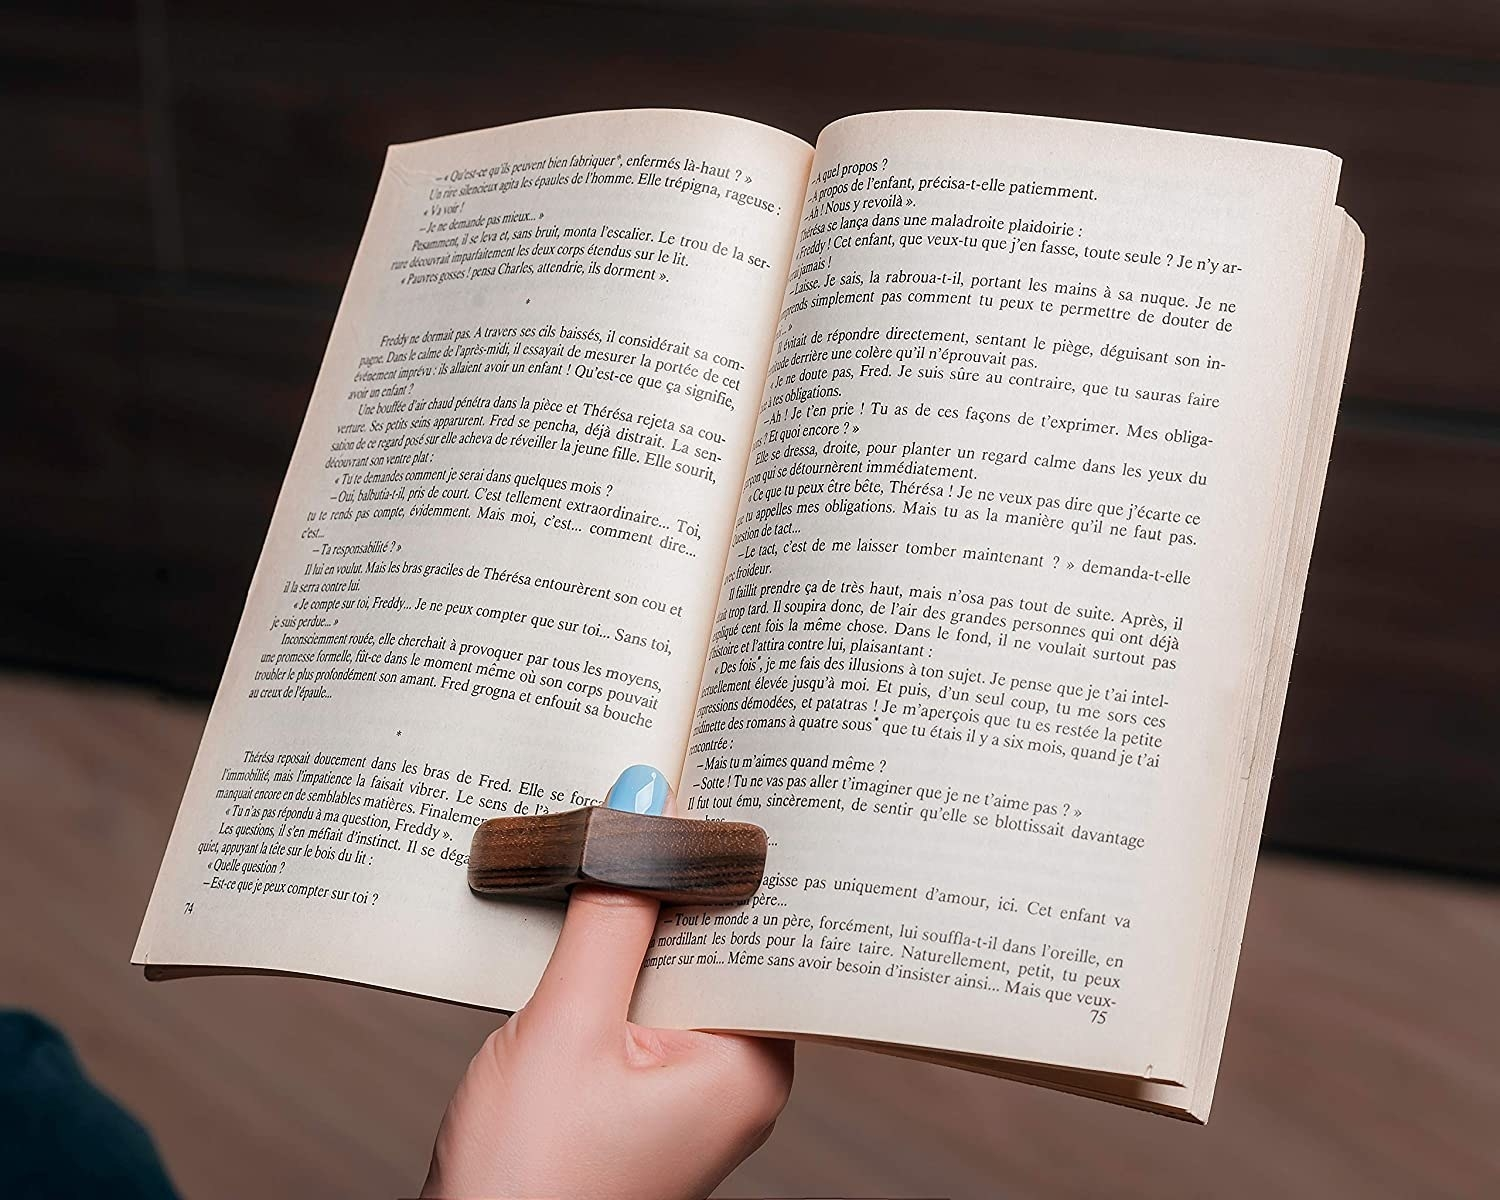 person using the book holder with one hand to open a book